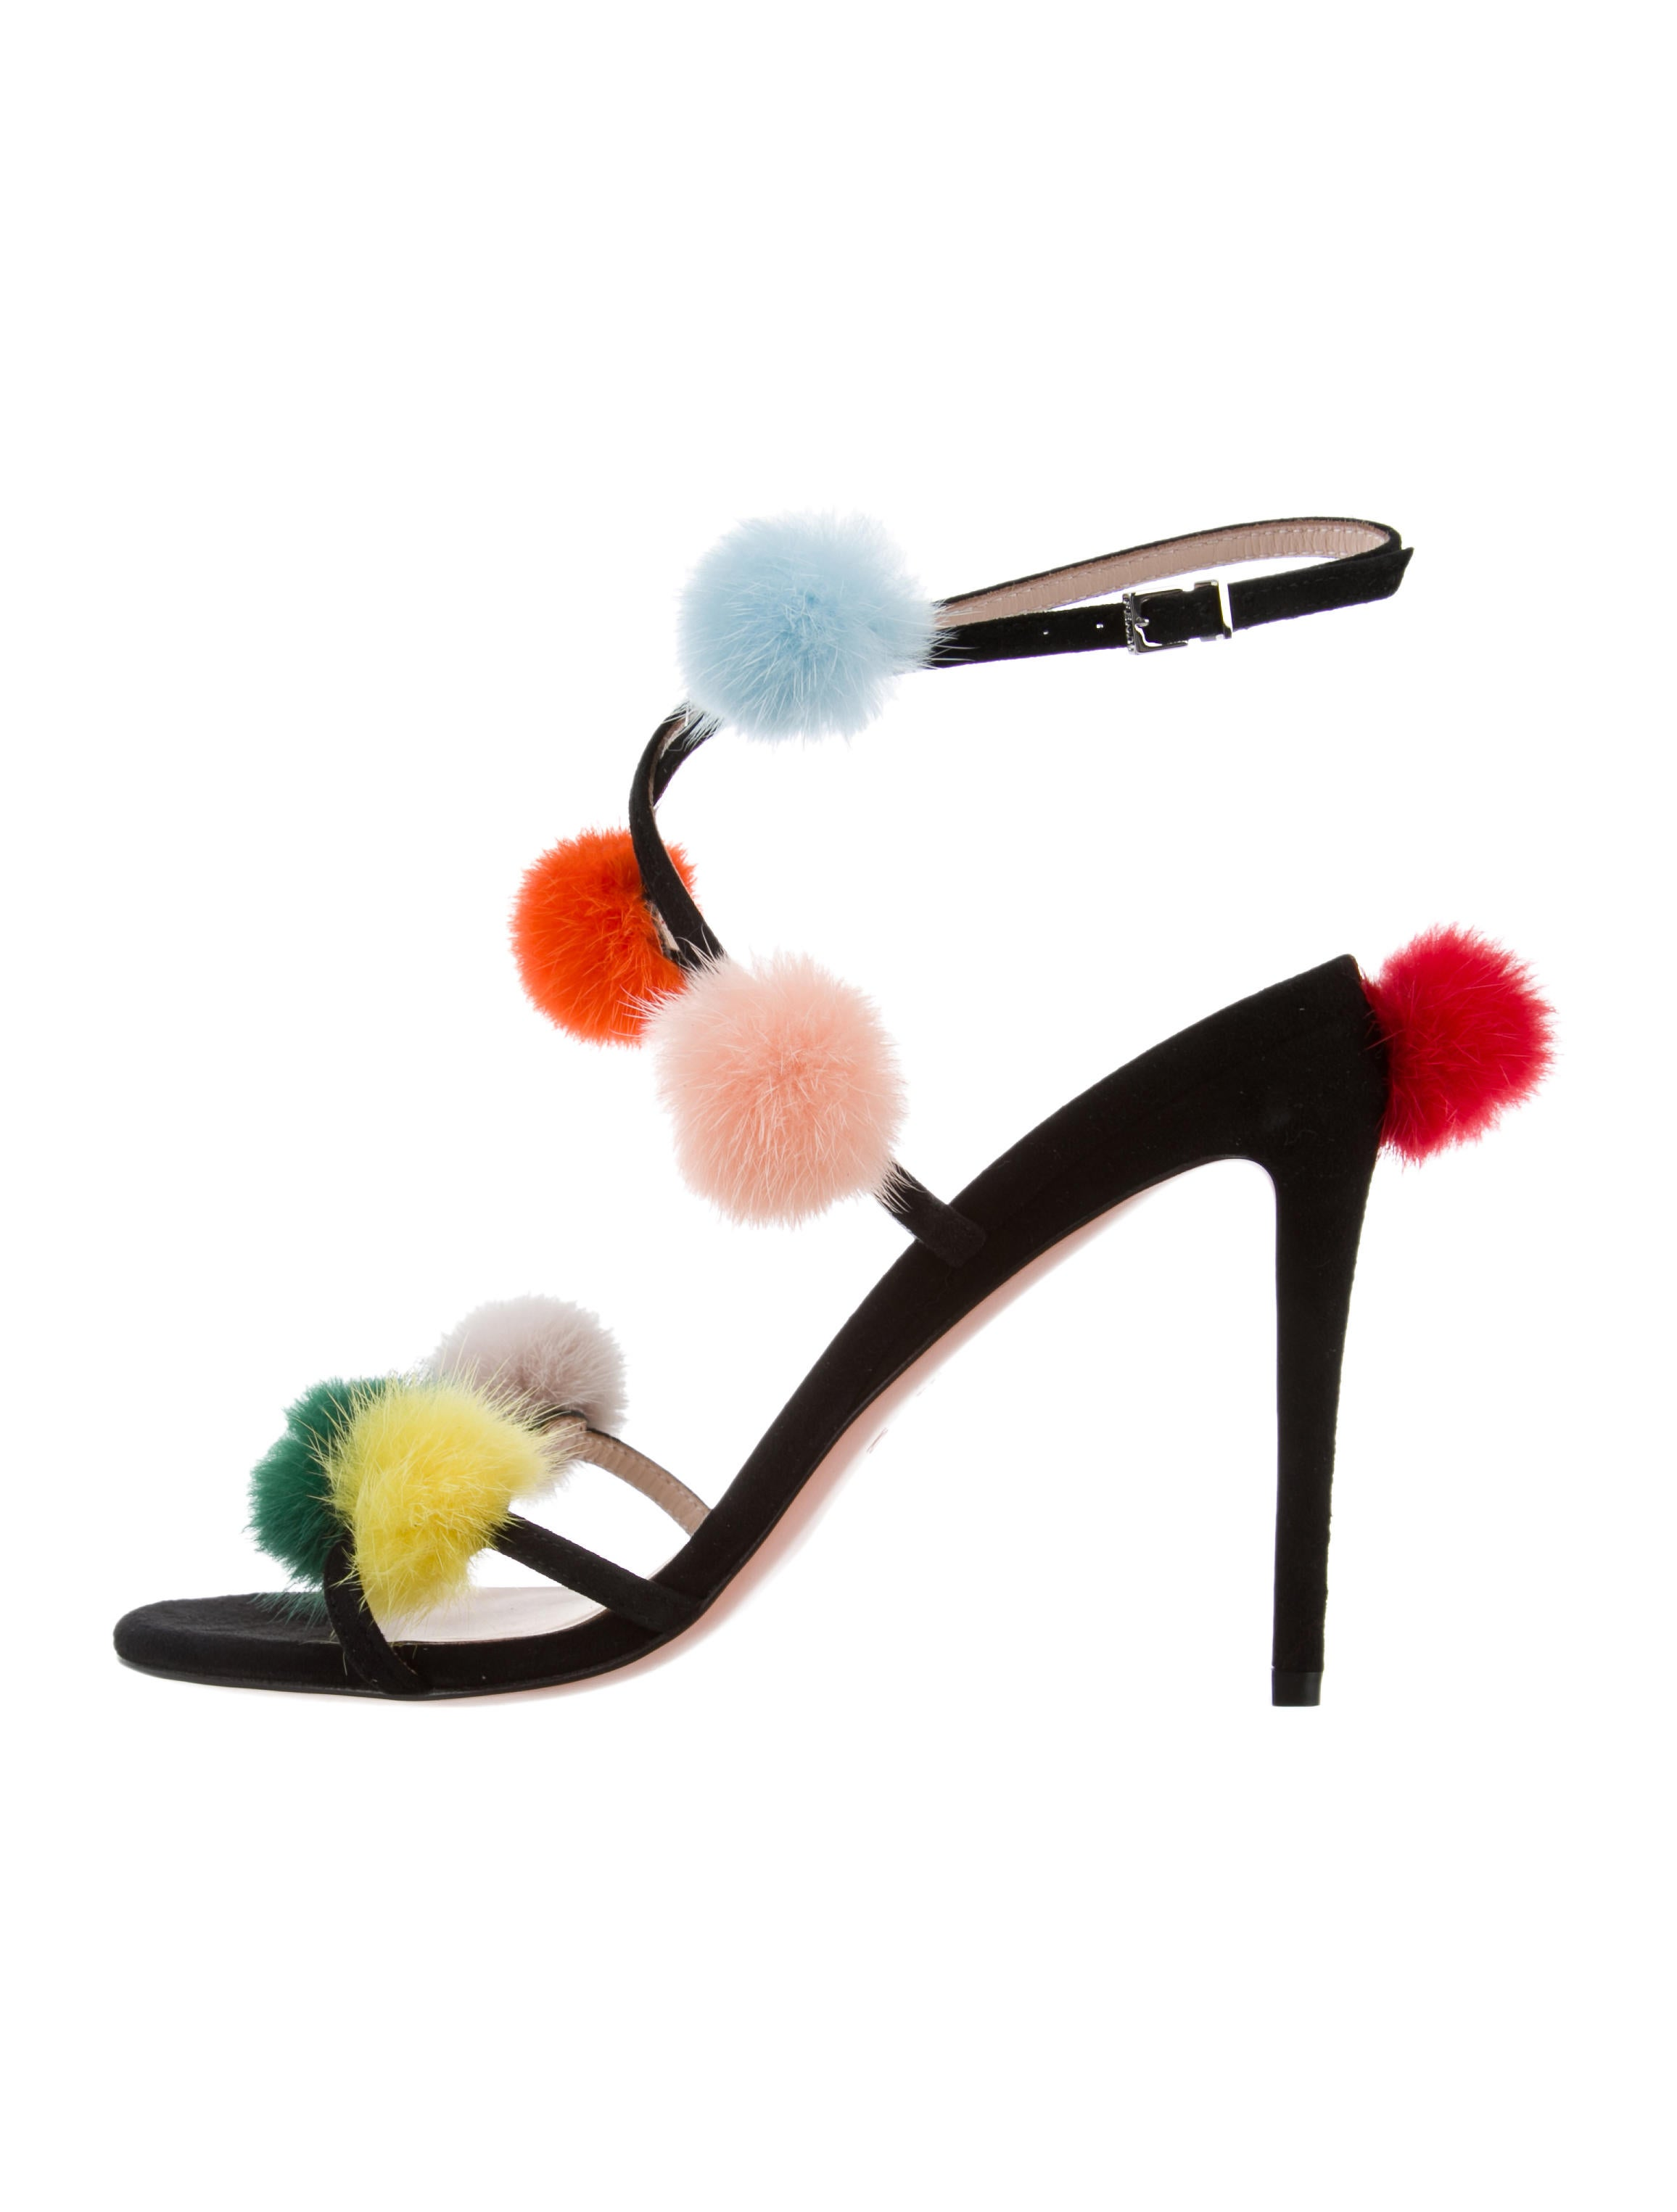 Fendi Mink Fur Pom-Pom Sandals w/ Tags buy cheap buy cheap online store Manchester factory outlet browse sale browse Q8dFKJ